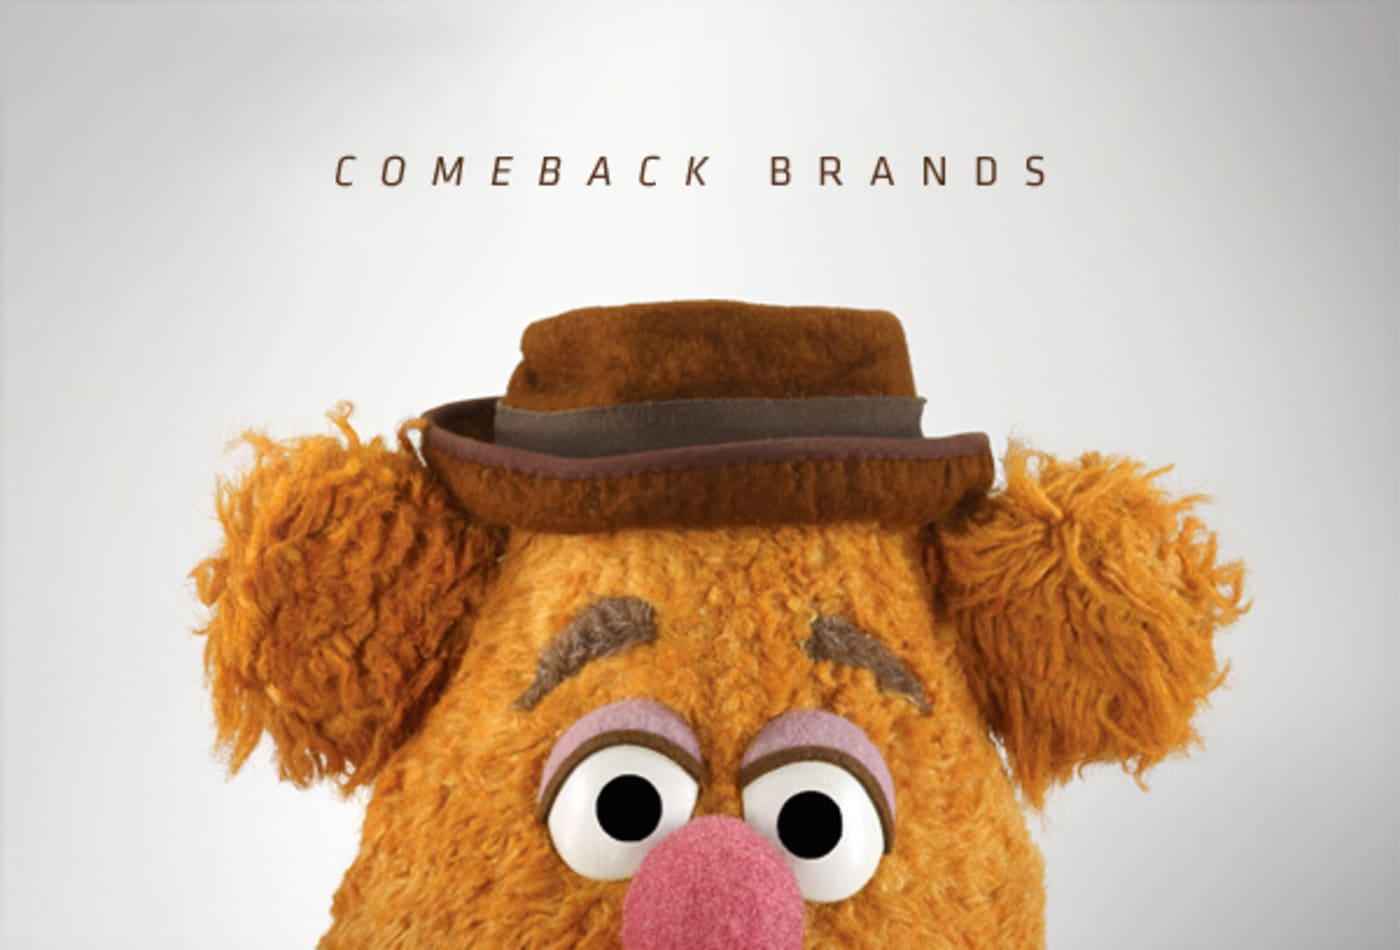 Muppets-Cover-Comeback-Brands-CNBC.jpg